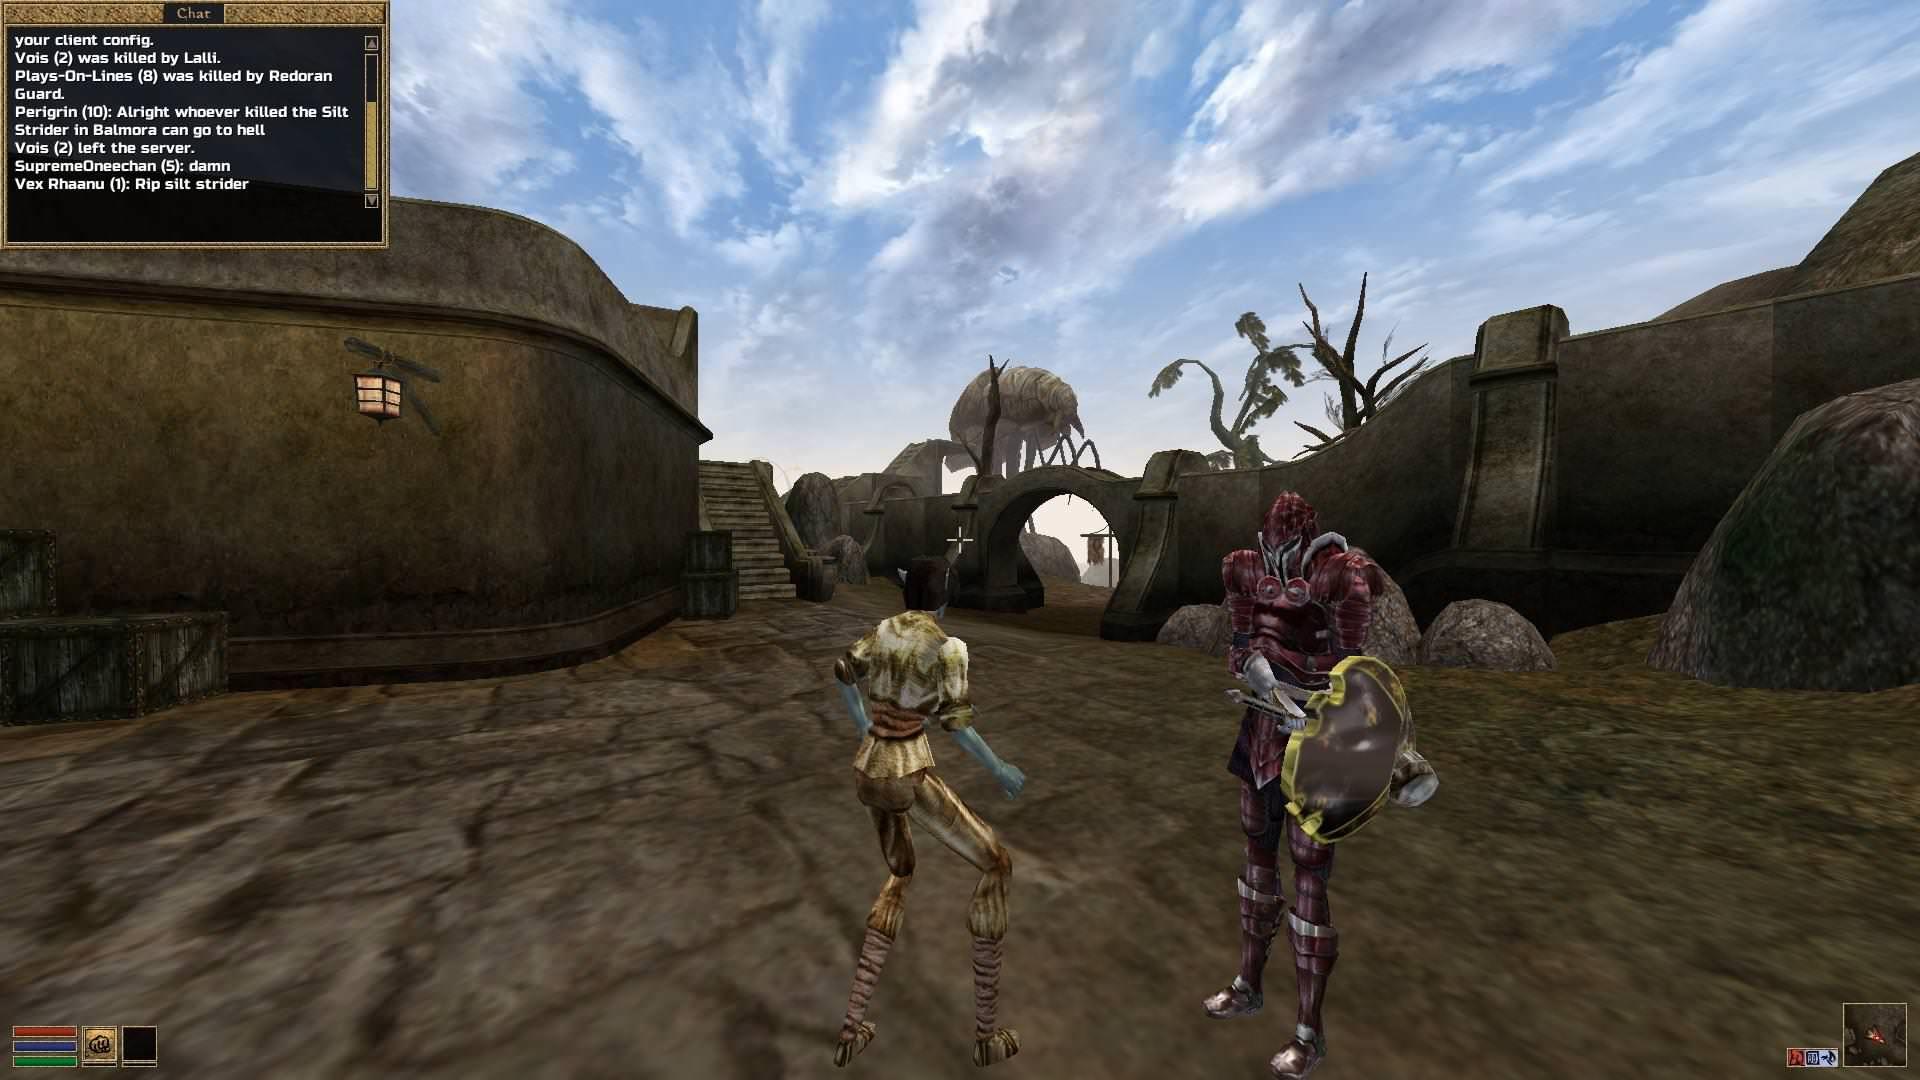 Playing Morrowind's first fully functional multiplayer mod- TES3MP